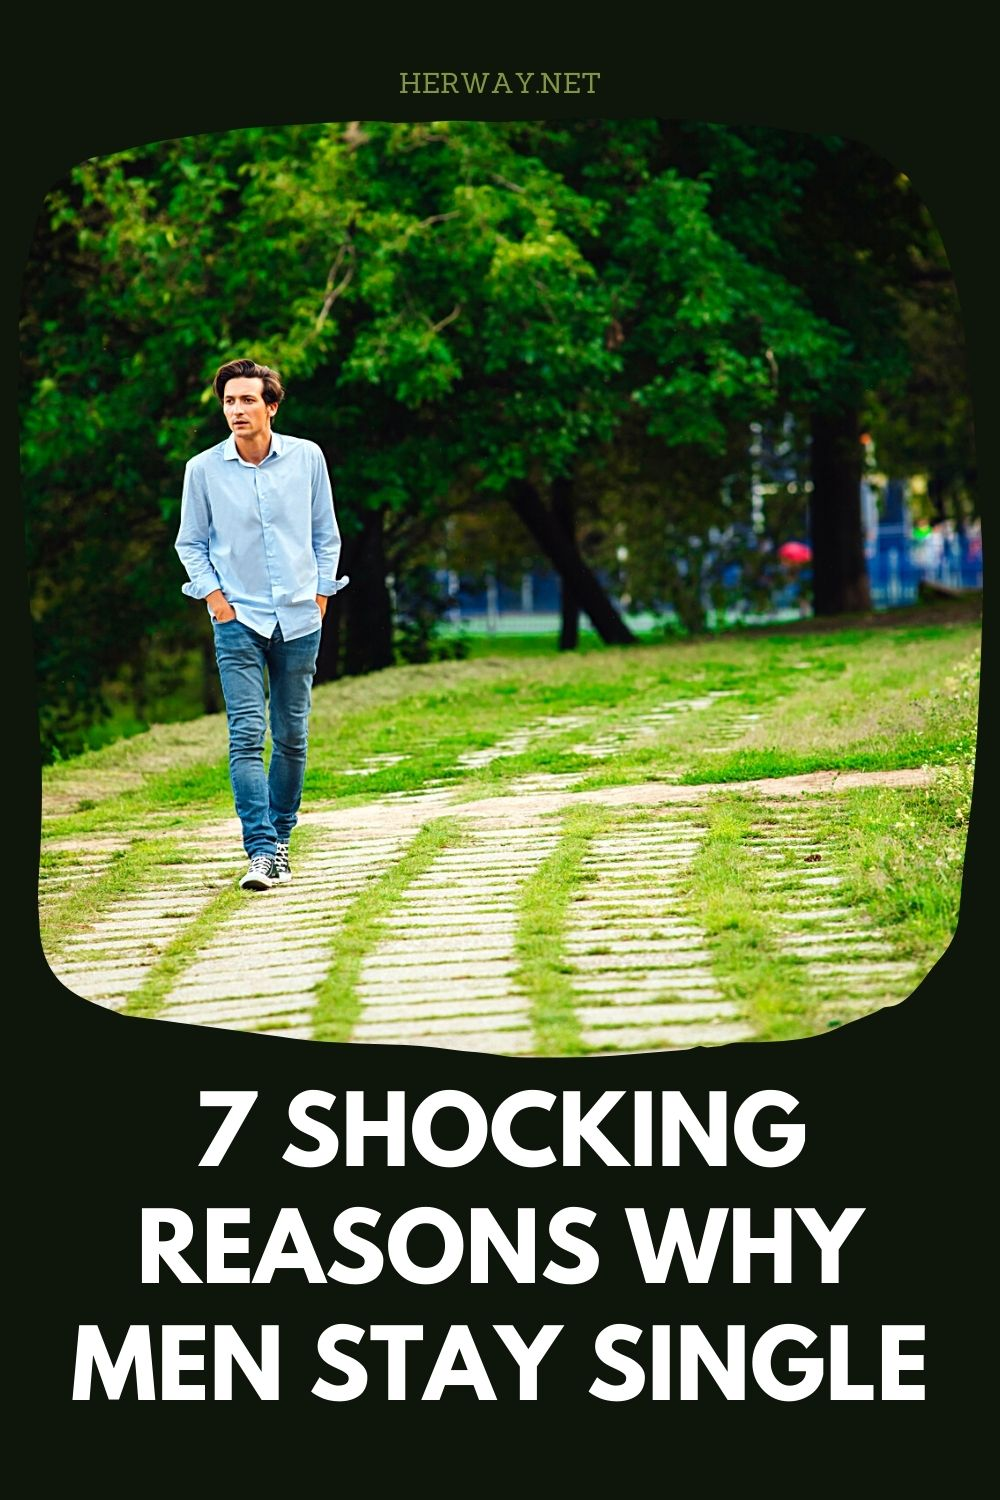 7 Shocking Reasons Why Men Stay Single